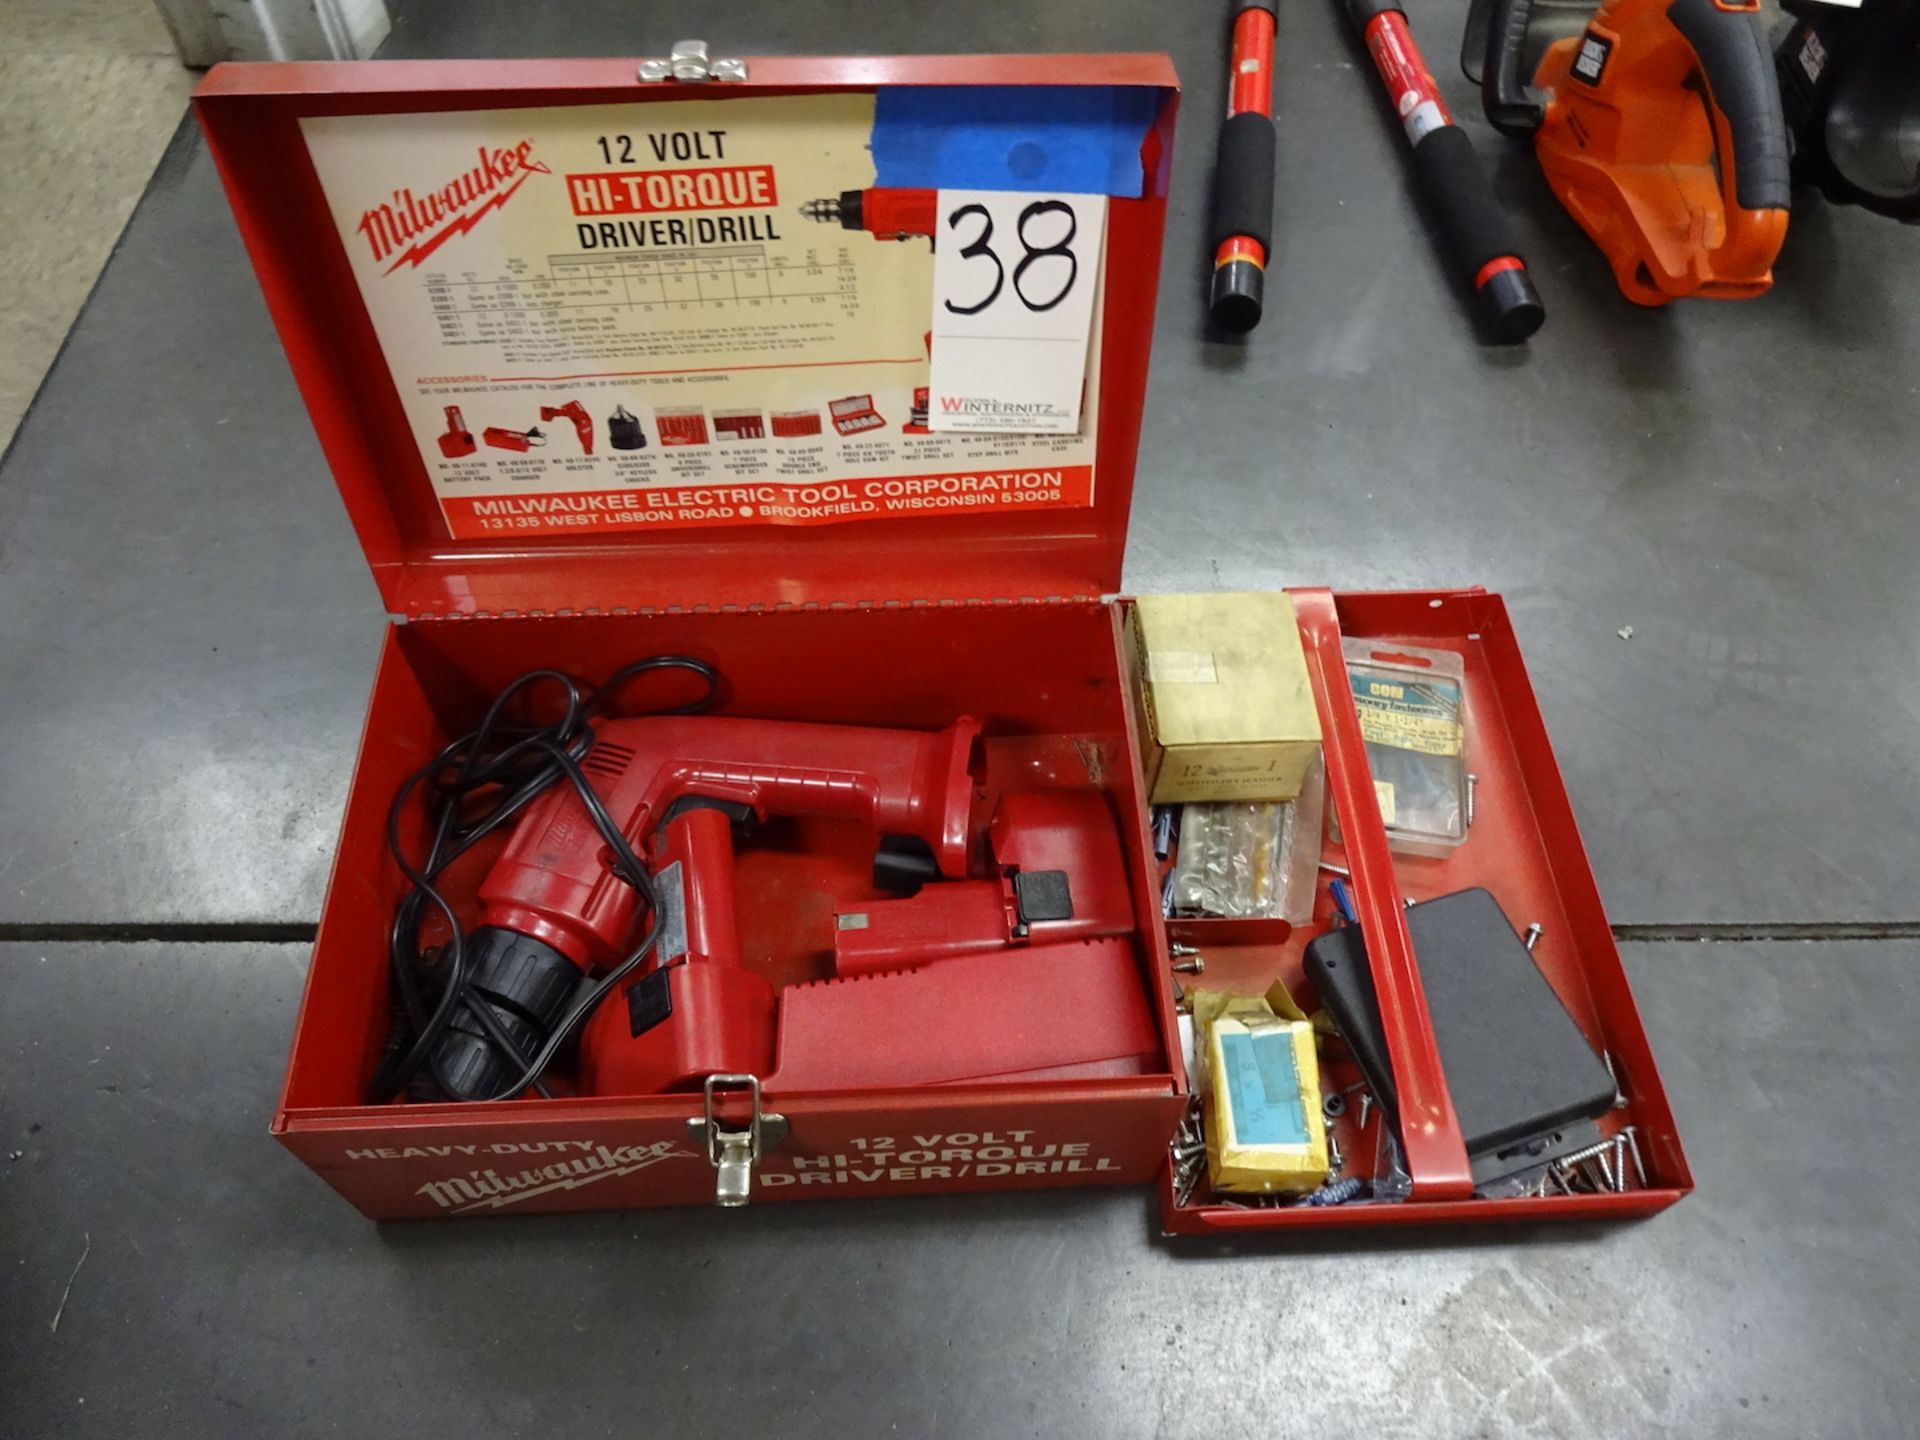 Lot 38 - Milwaukee 12 Volt Hi-Torque Driver/Drill